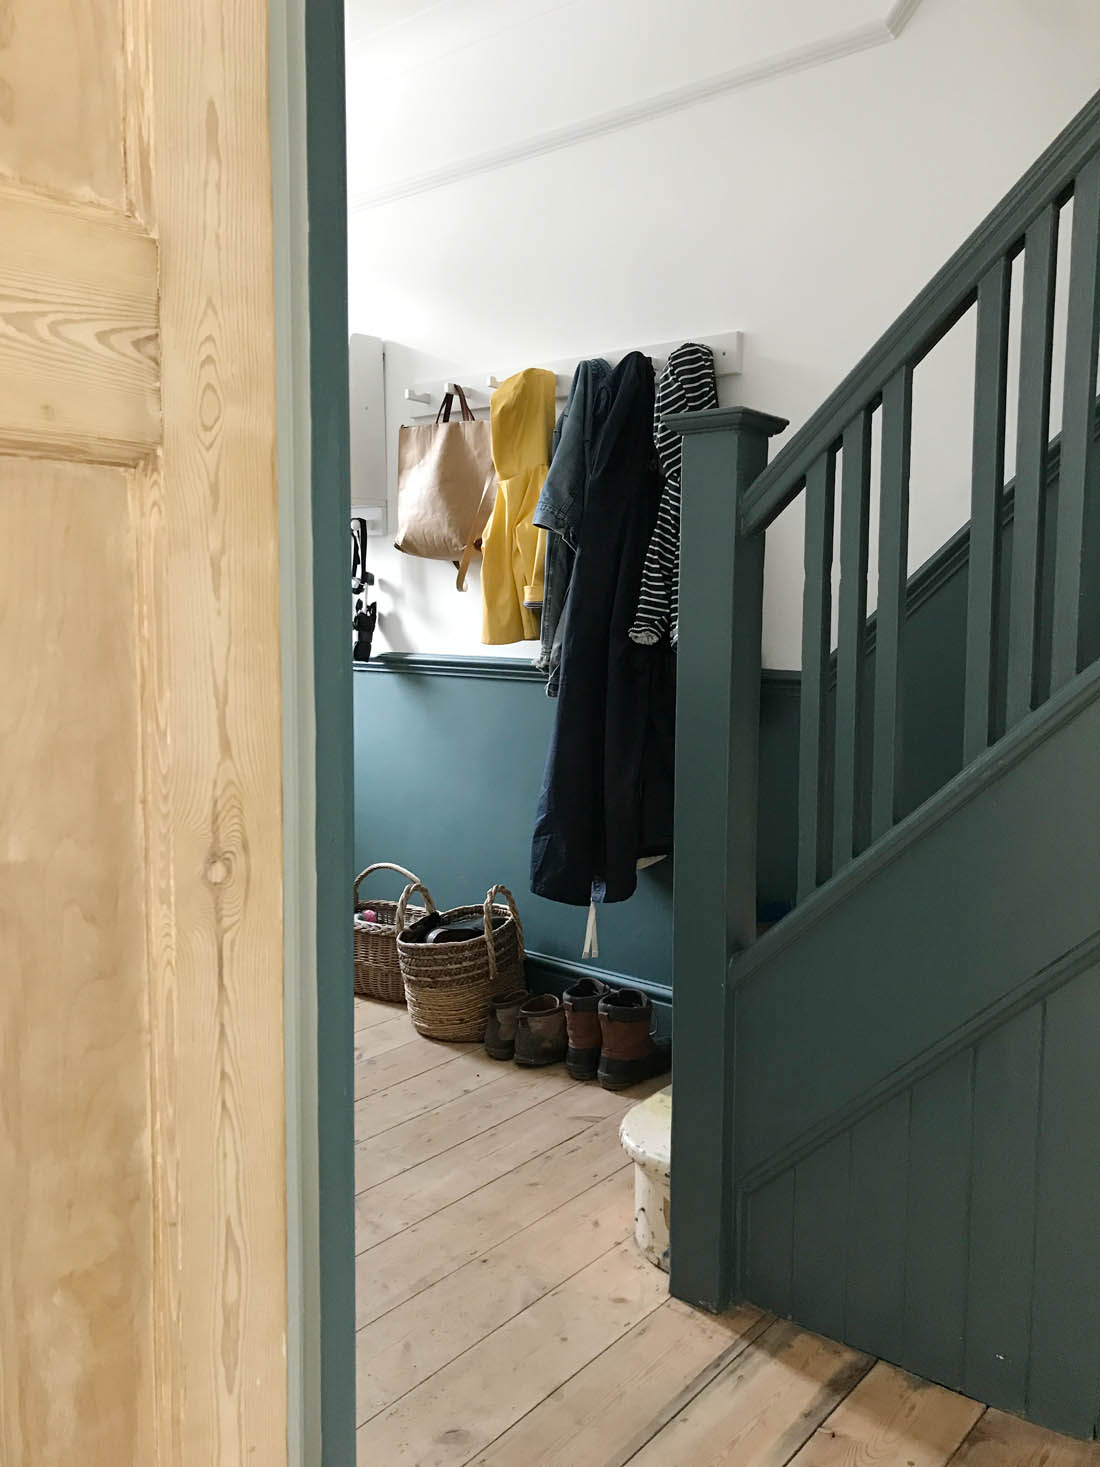 Our unfinished hallway and need for storage